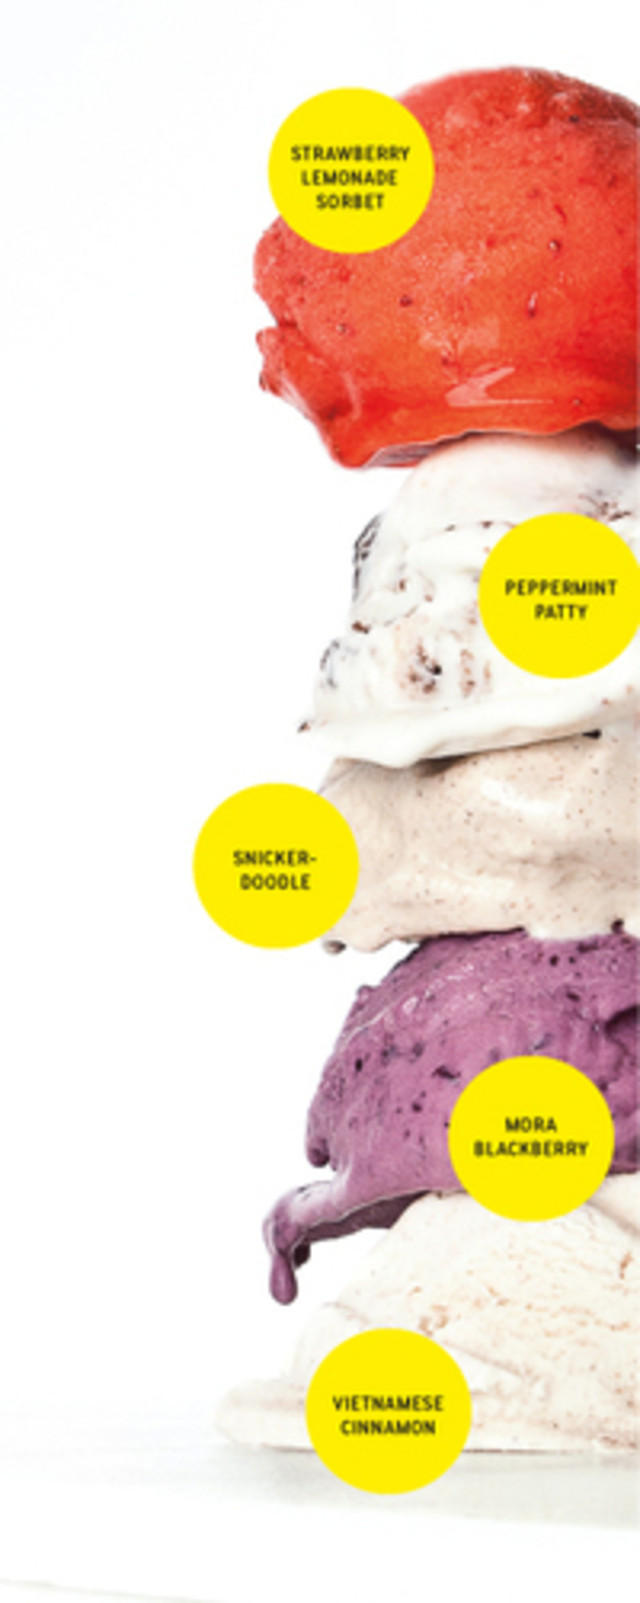 This Might Be Your Last Weekend To Eat Ice Cream